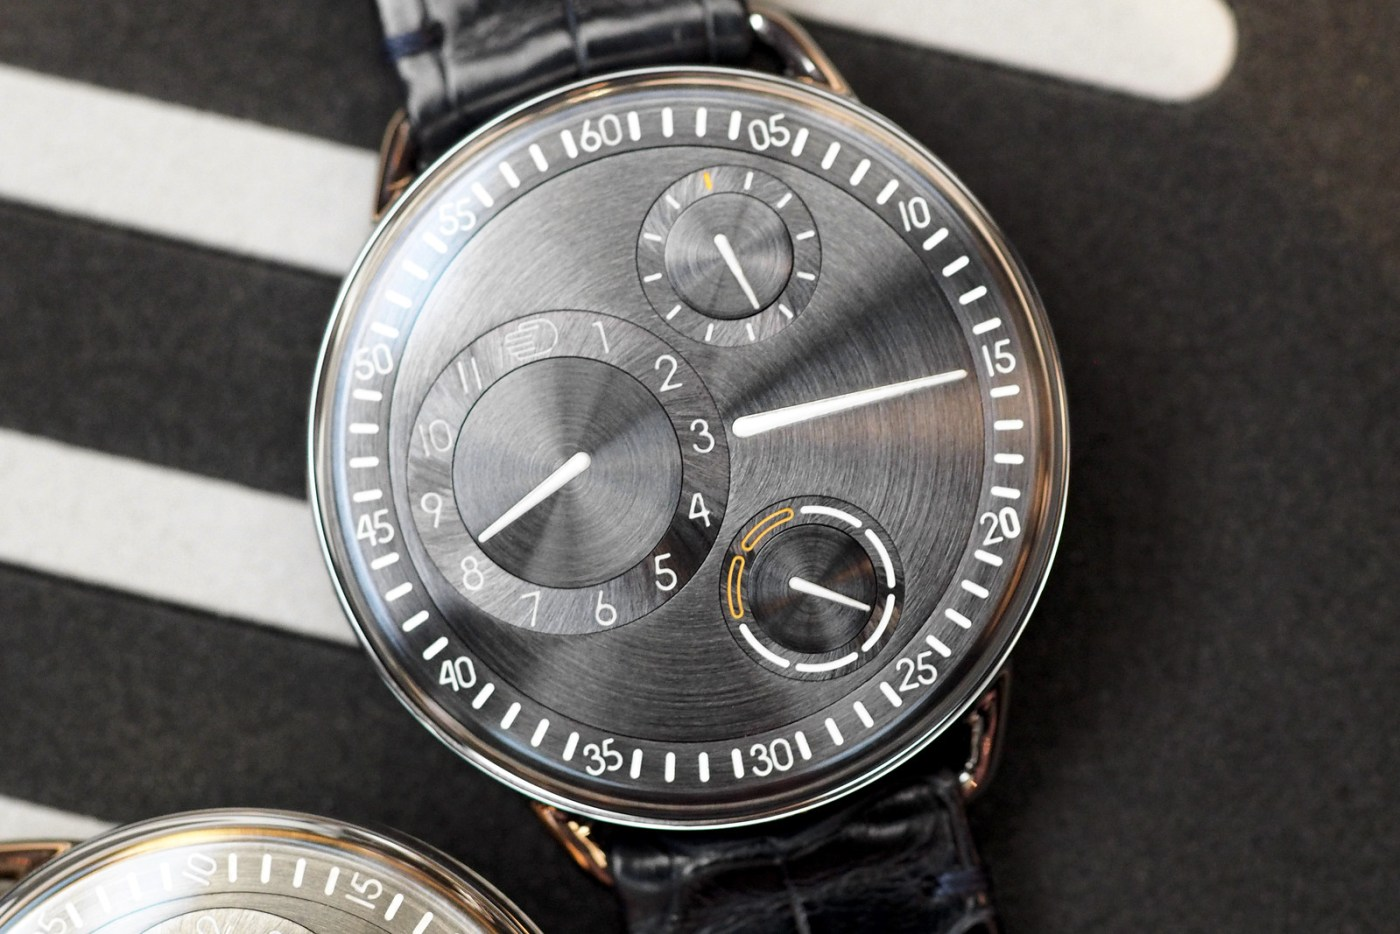 Ressence at Baselworld 2015